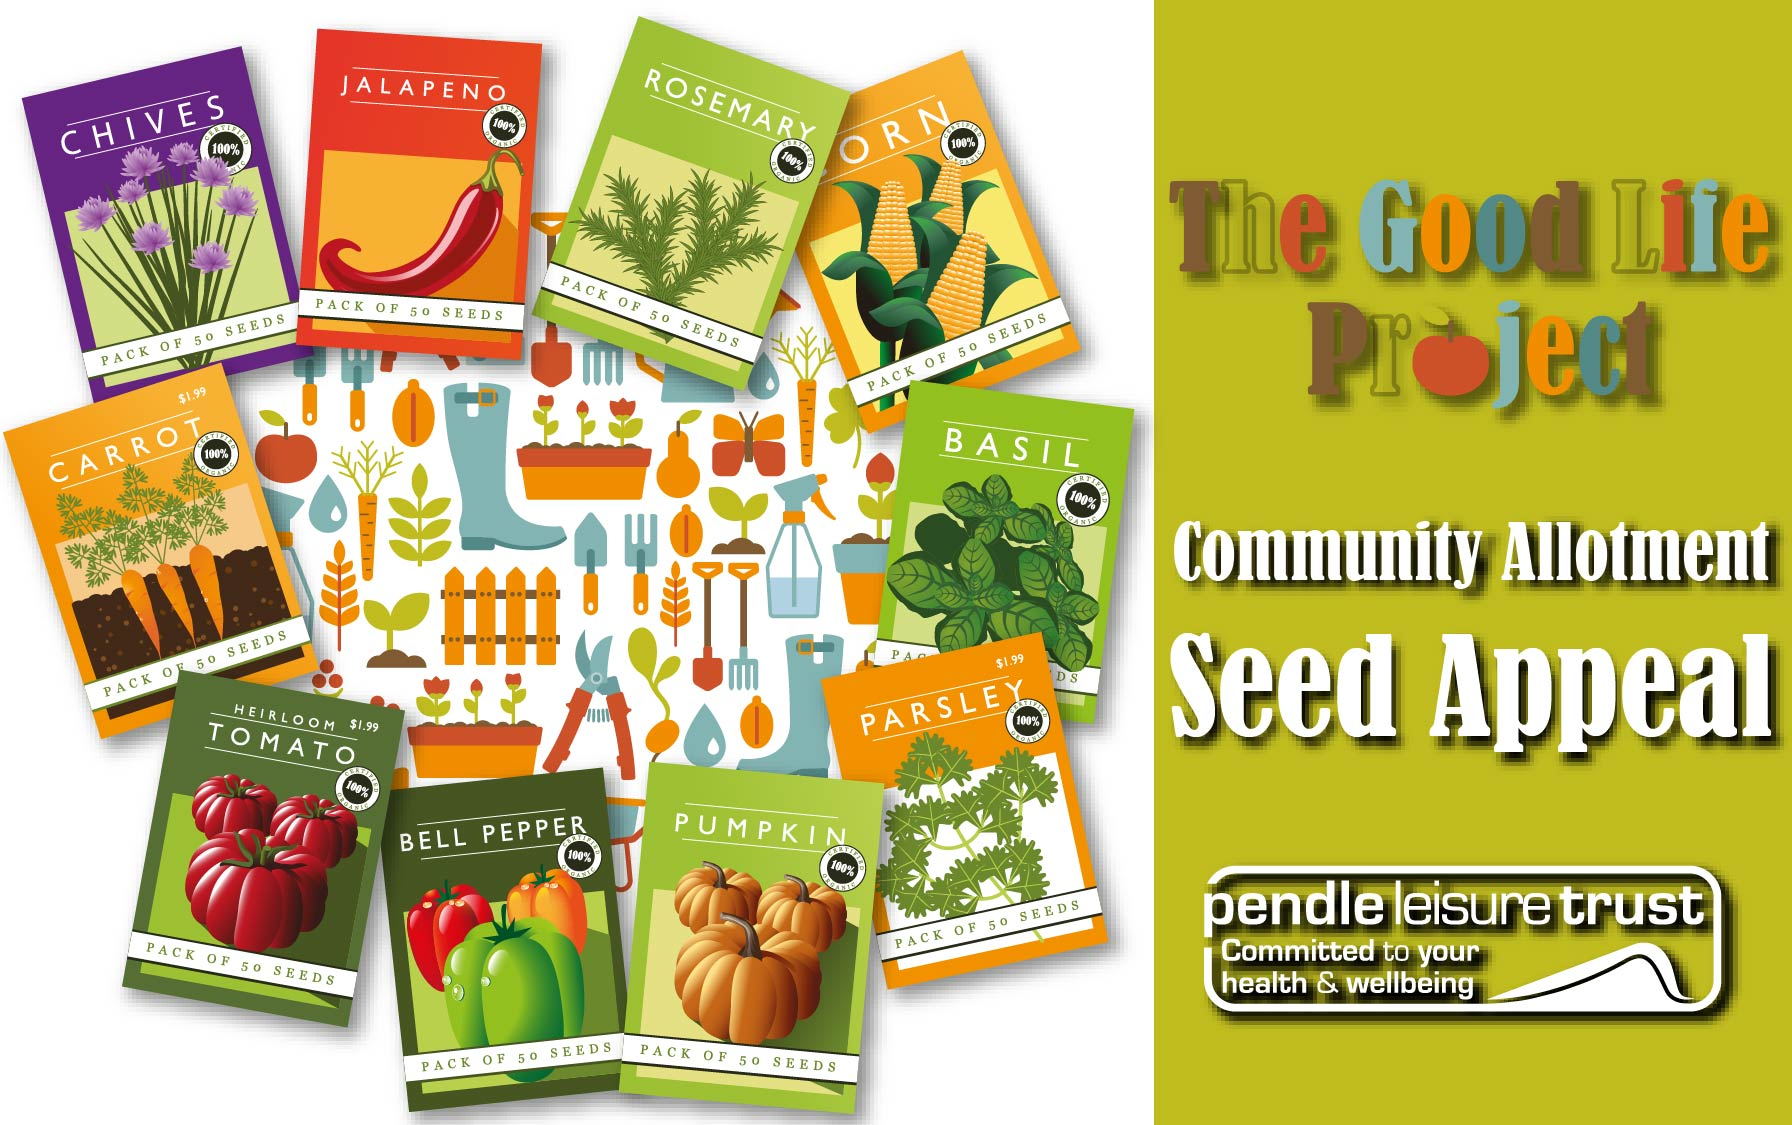 The Good Life Project's Seed Appeal